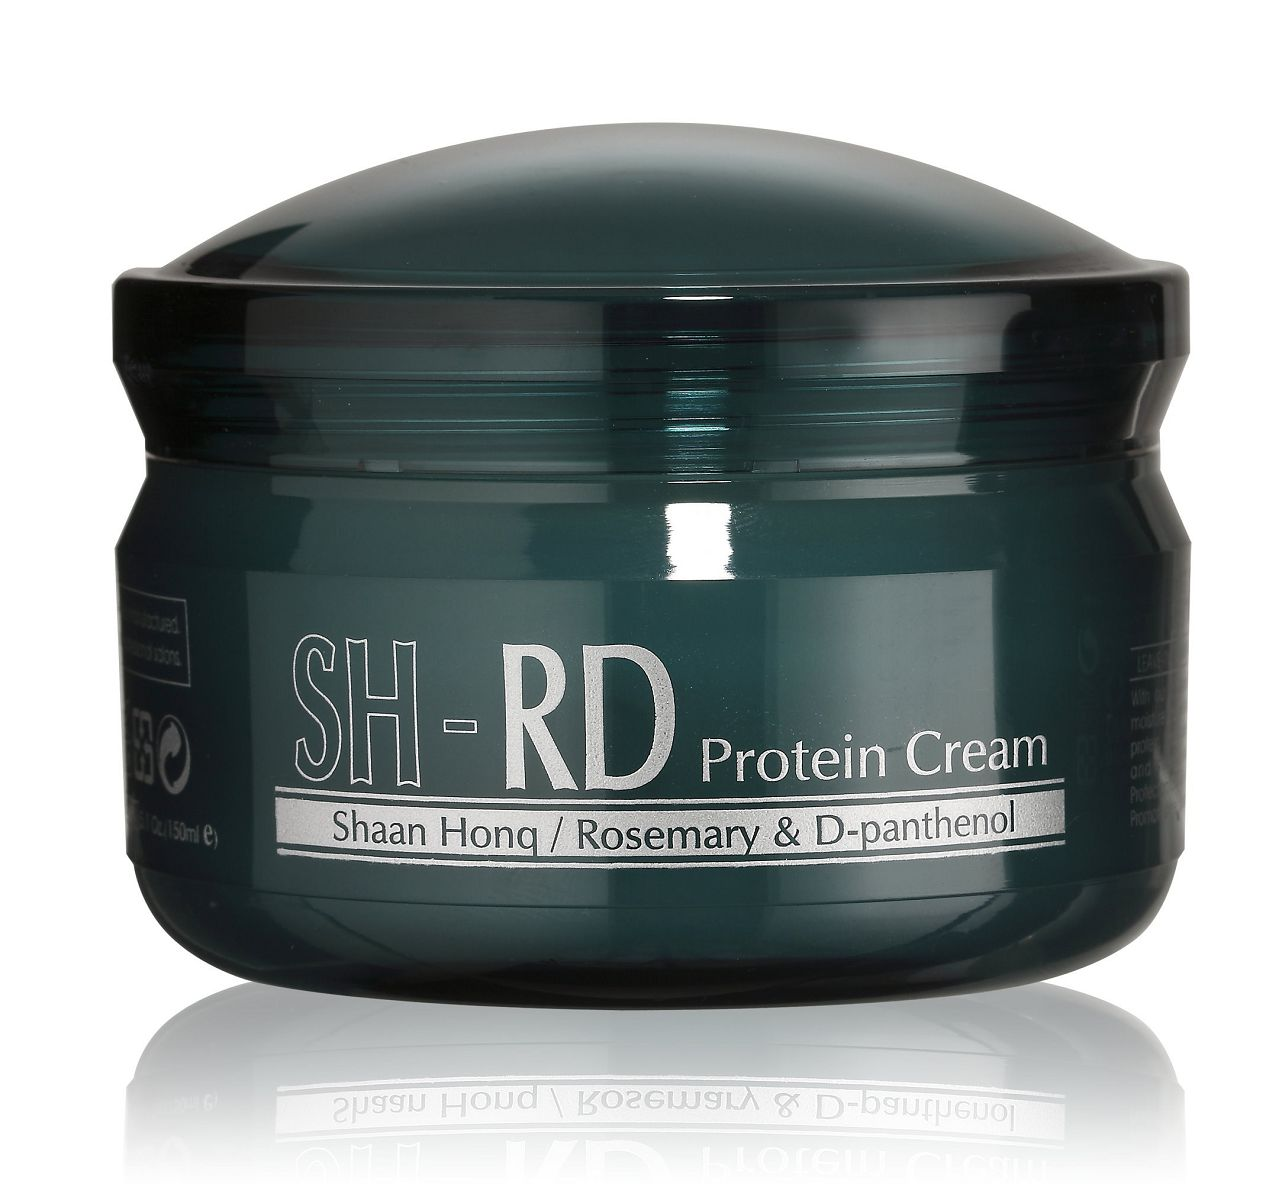 SHAAN HONQ INT'L COSMETIC CORP.-SH-RD Protein Cream